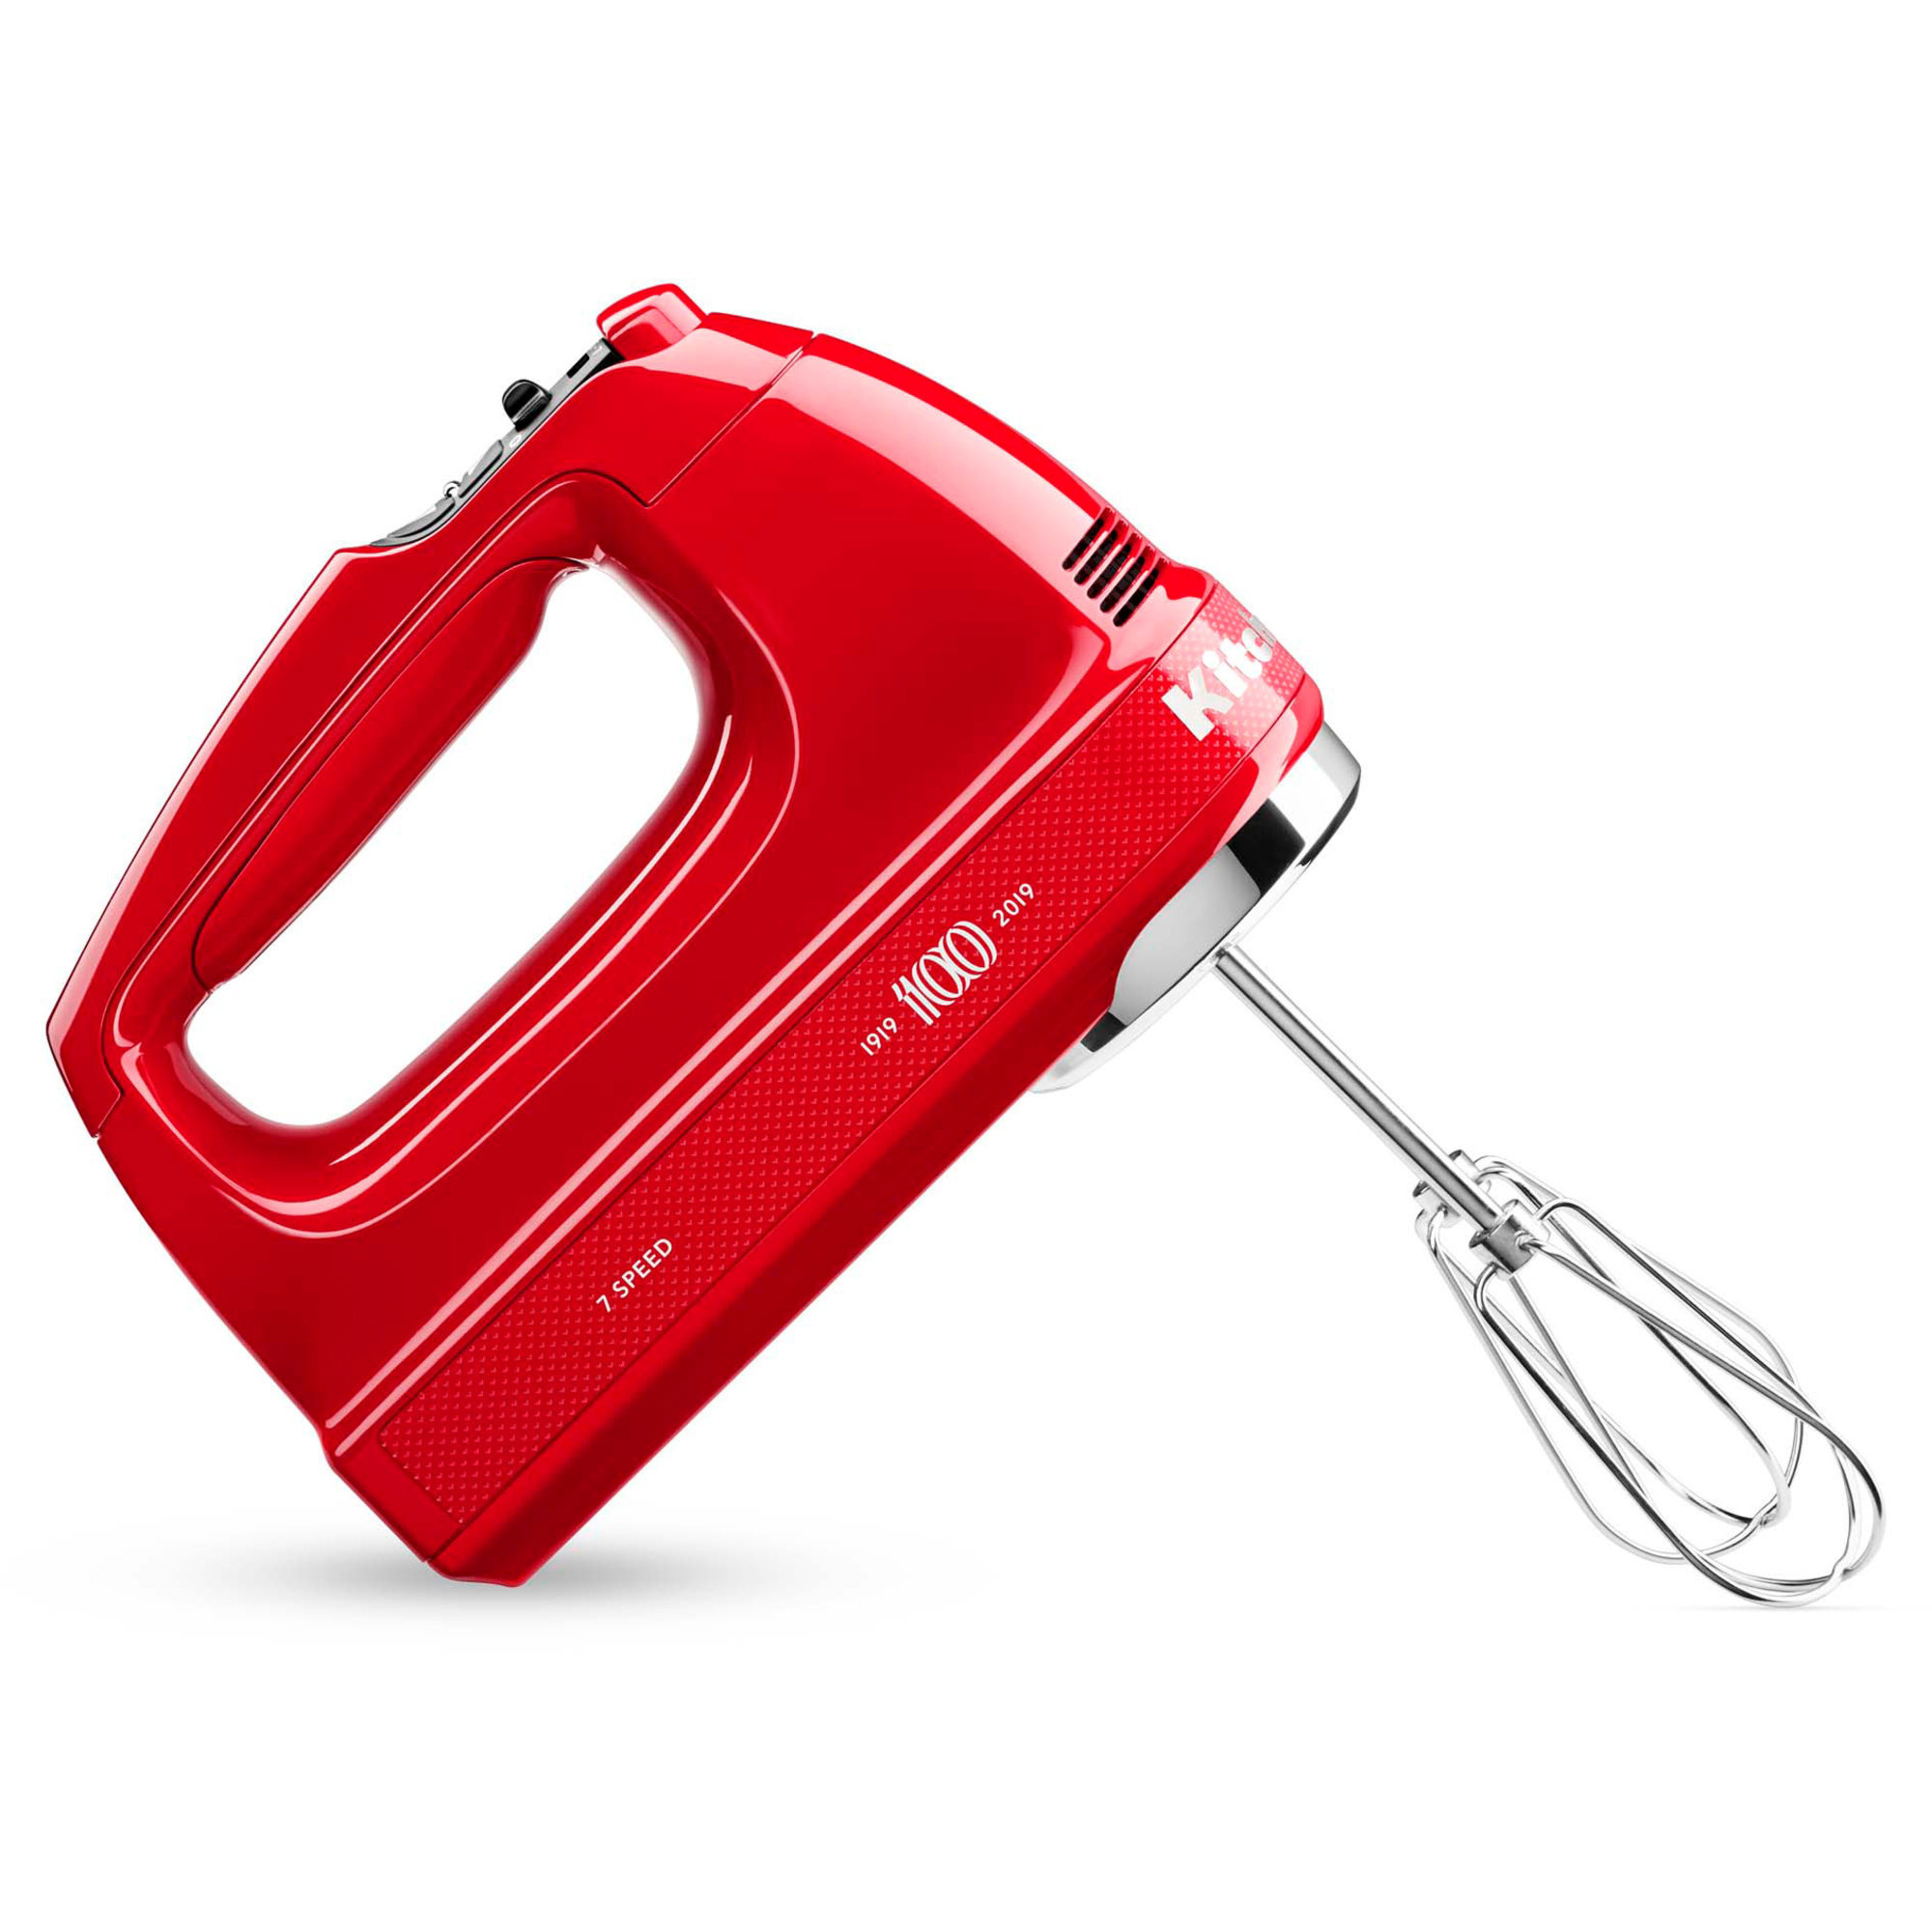 KitchenAid Elvisp 7 hastigheter – 100 Year Limited Edition – Queen of Hearts Collection